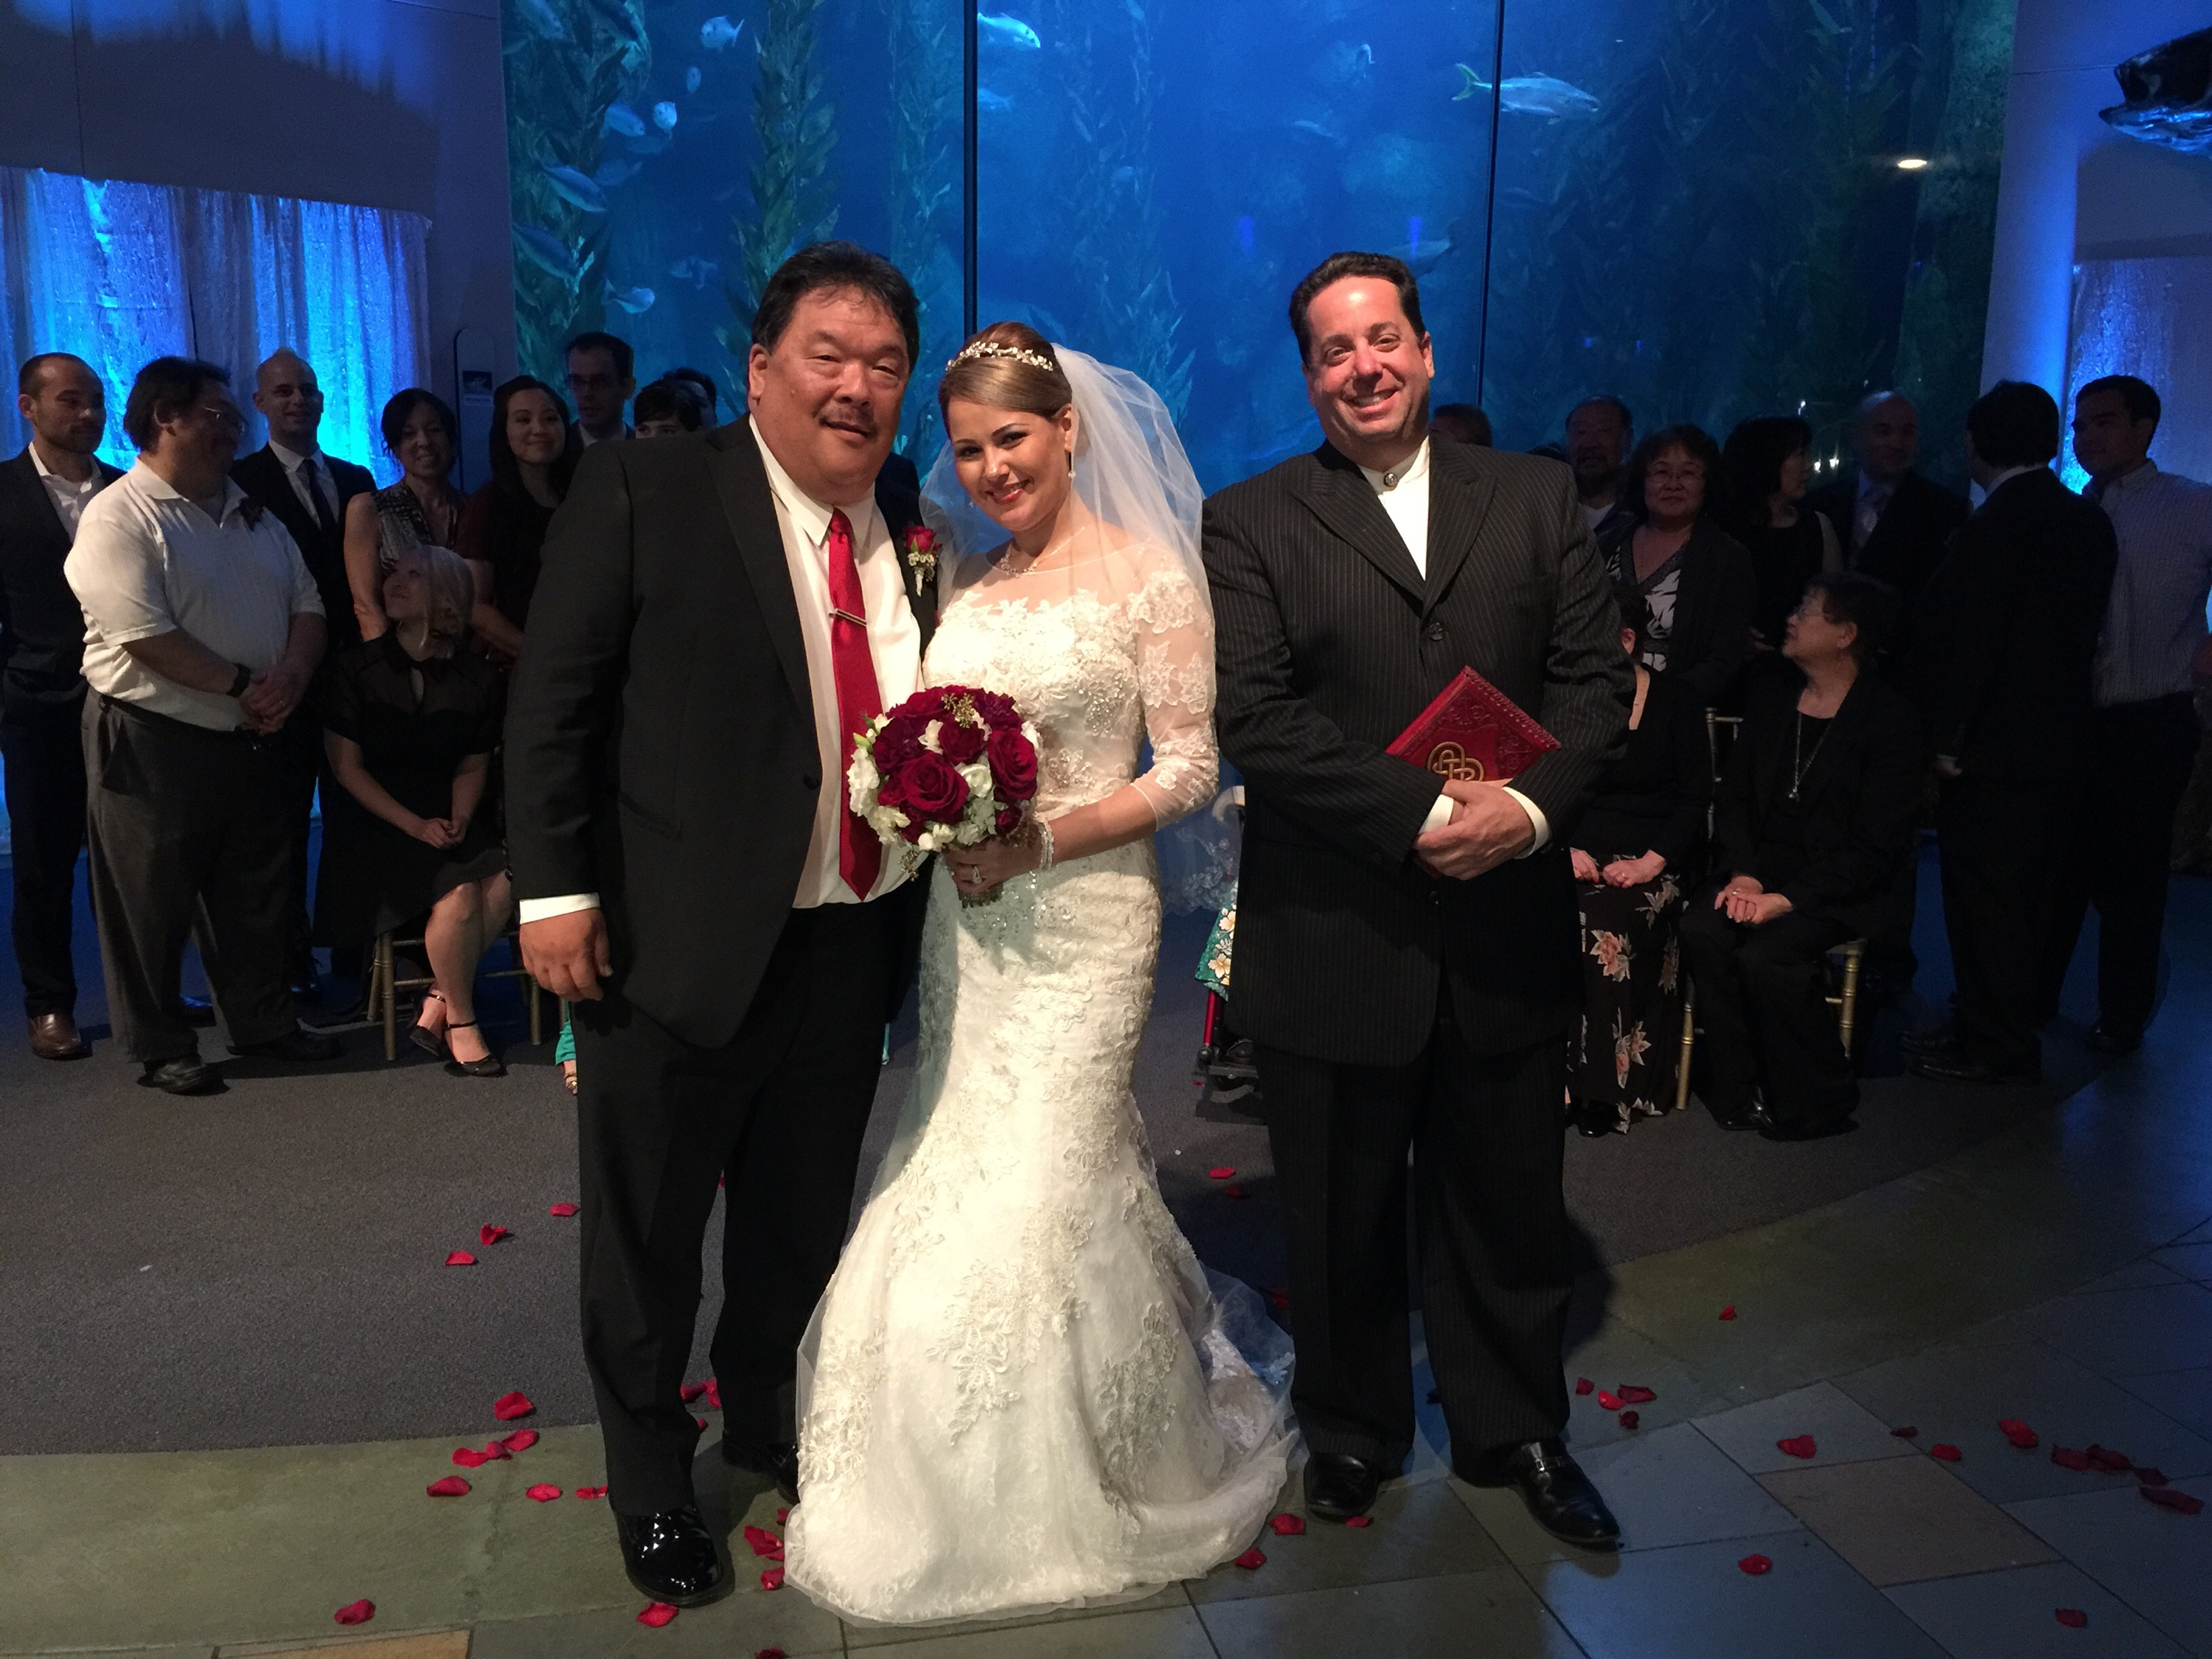 wedding at the aquarium of the pacific in long beach